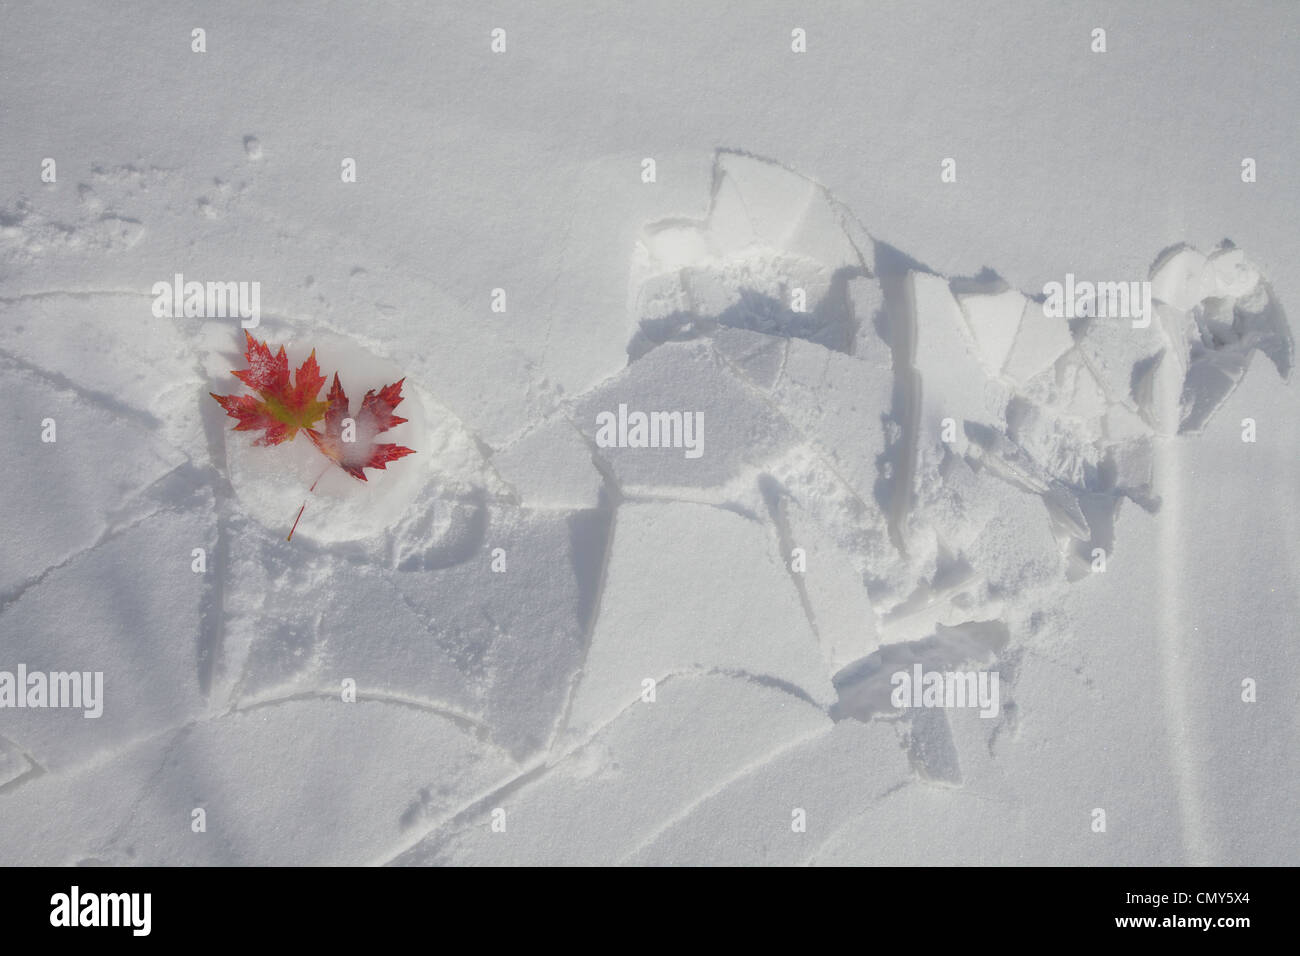 Canadian maples leaves of autumn caught frozen in ice and snow in winter. - Stock Image